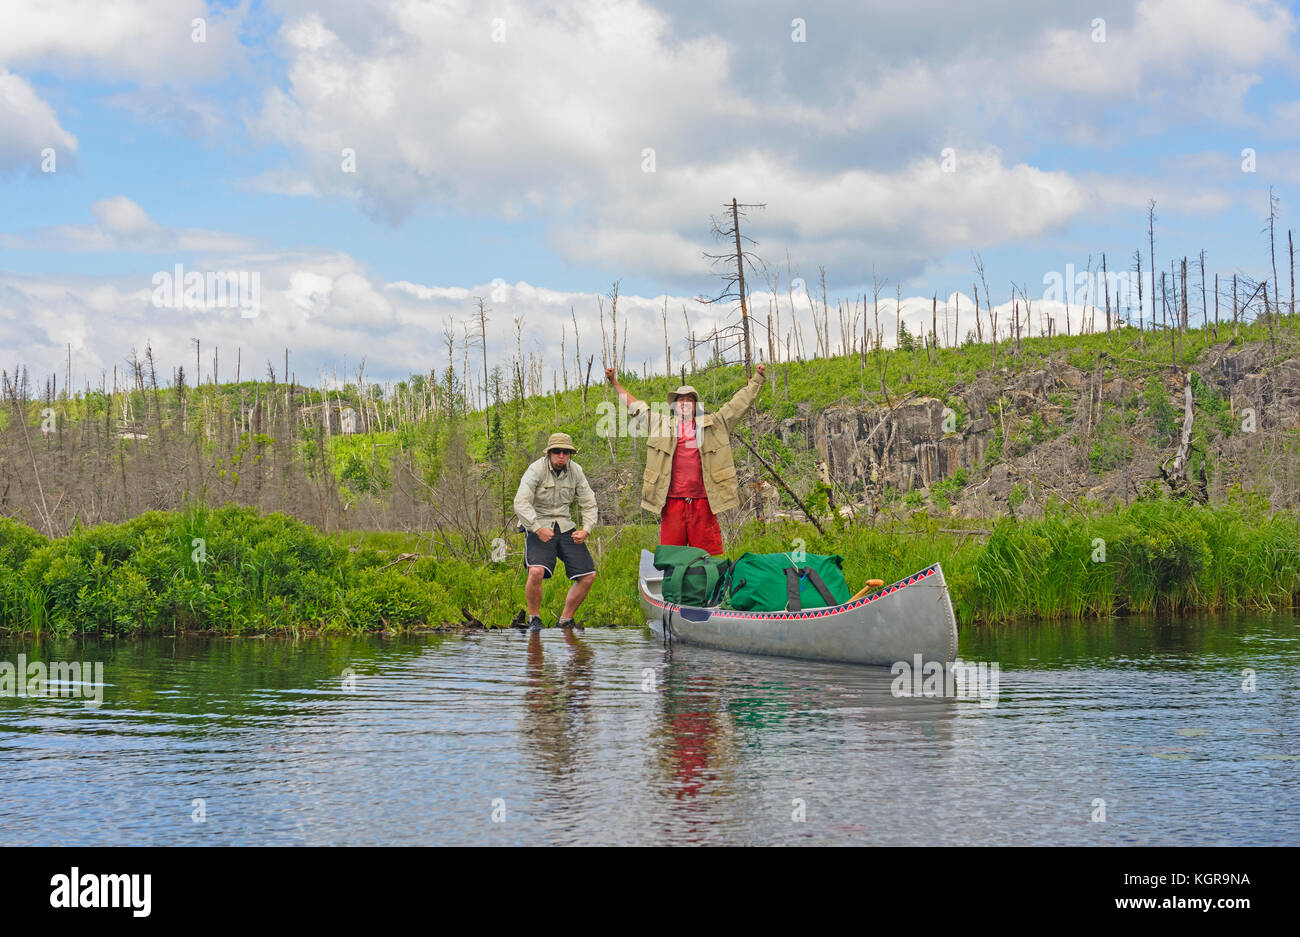 Made it over the Portage onto Kiskadinna Lake in the Boundary Waters in Minnesota - Stock Image